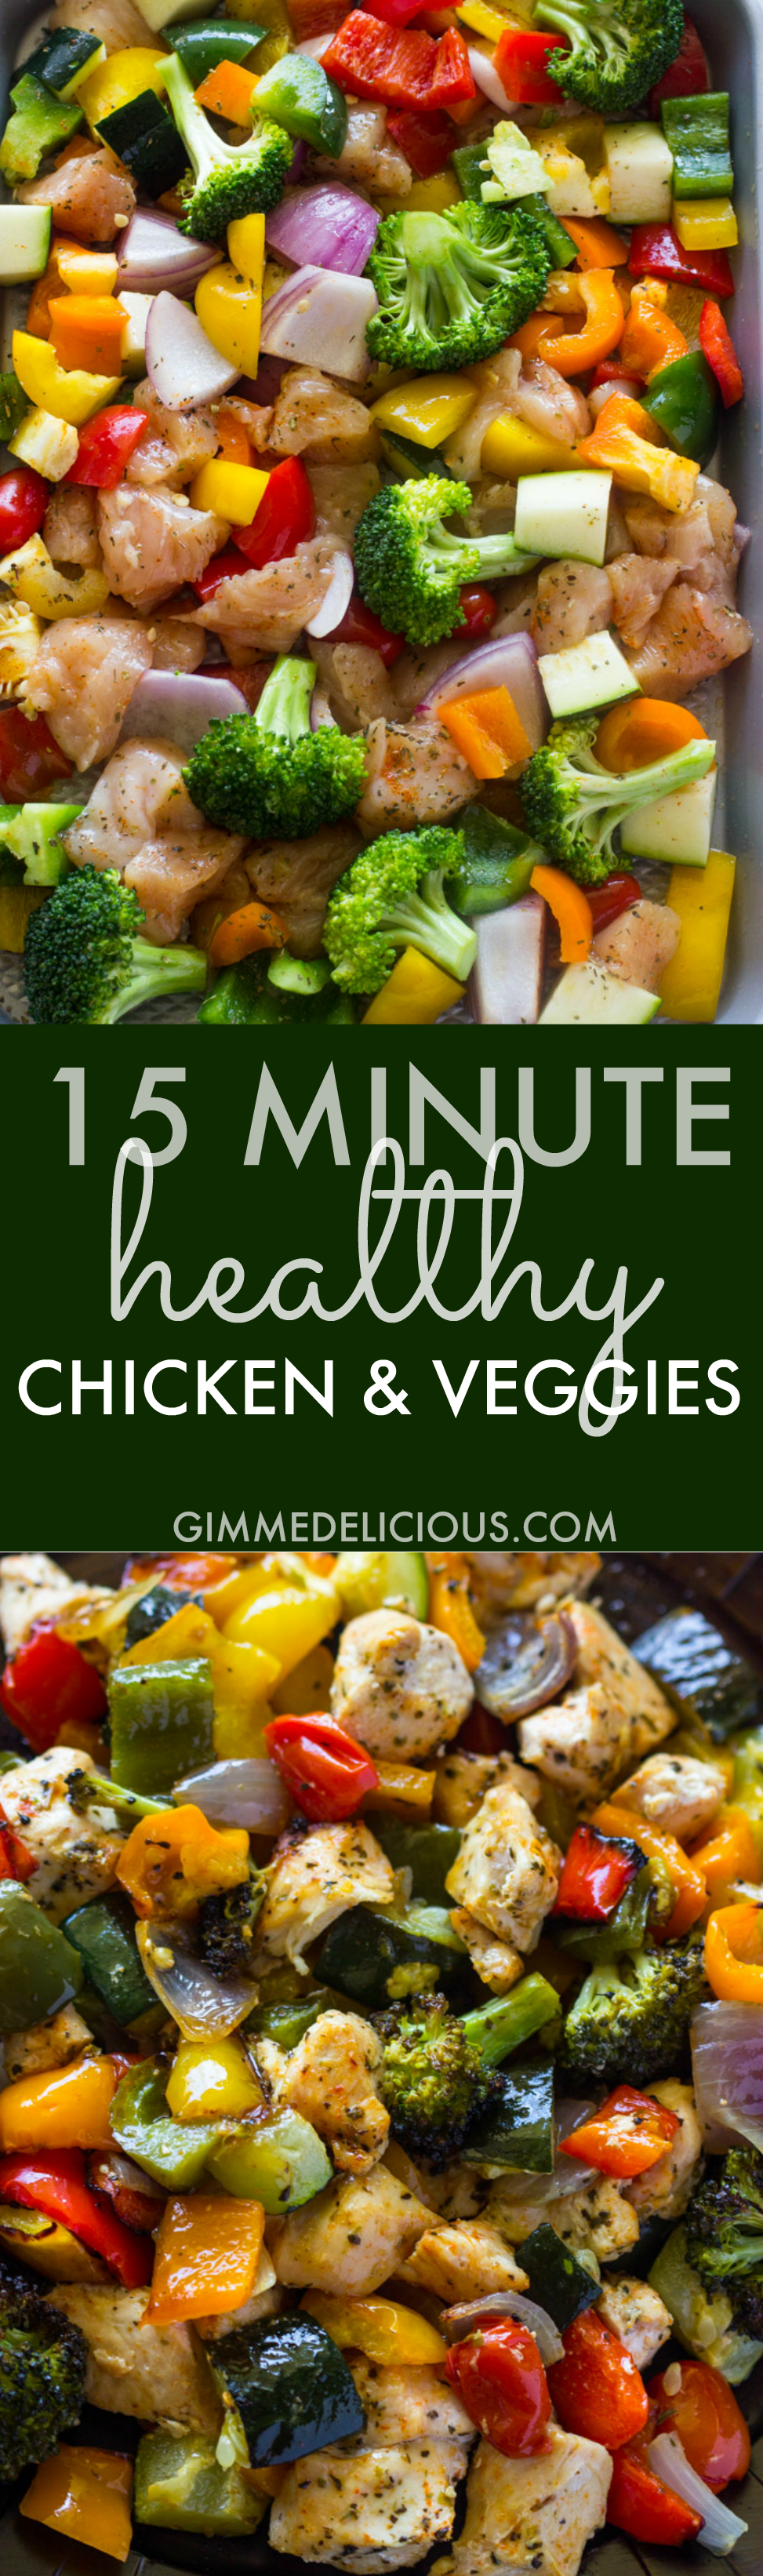 15 minute healthy roasted chicken and veggies video recipe 15 minute healthy roasted chicken and veggies video forumfinder Choice Image